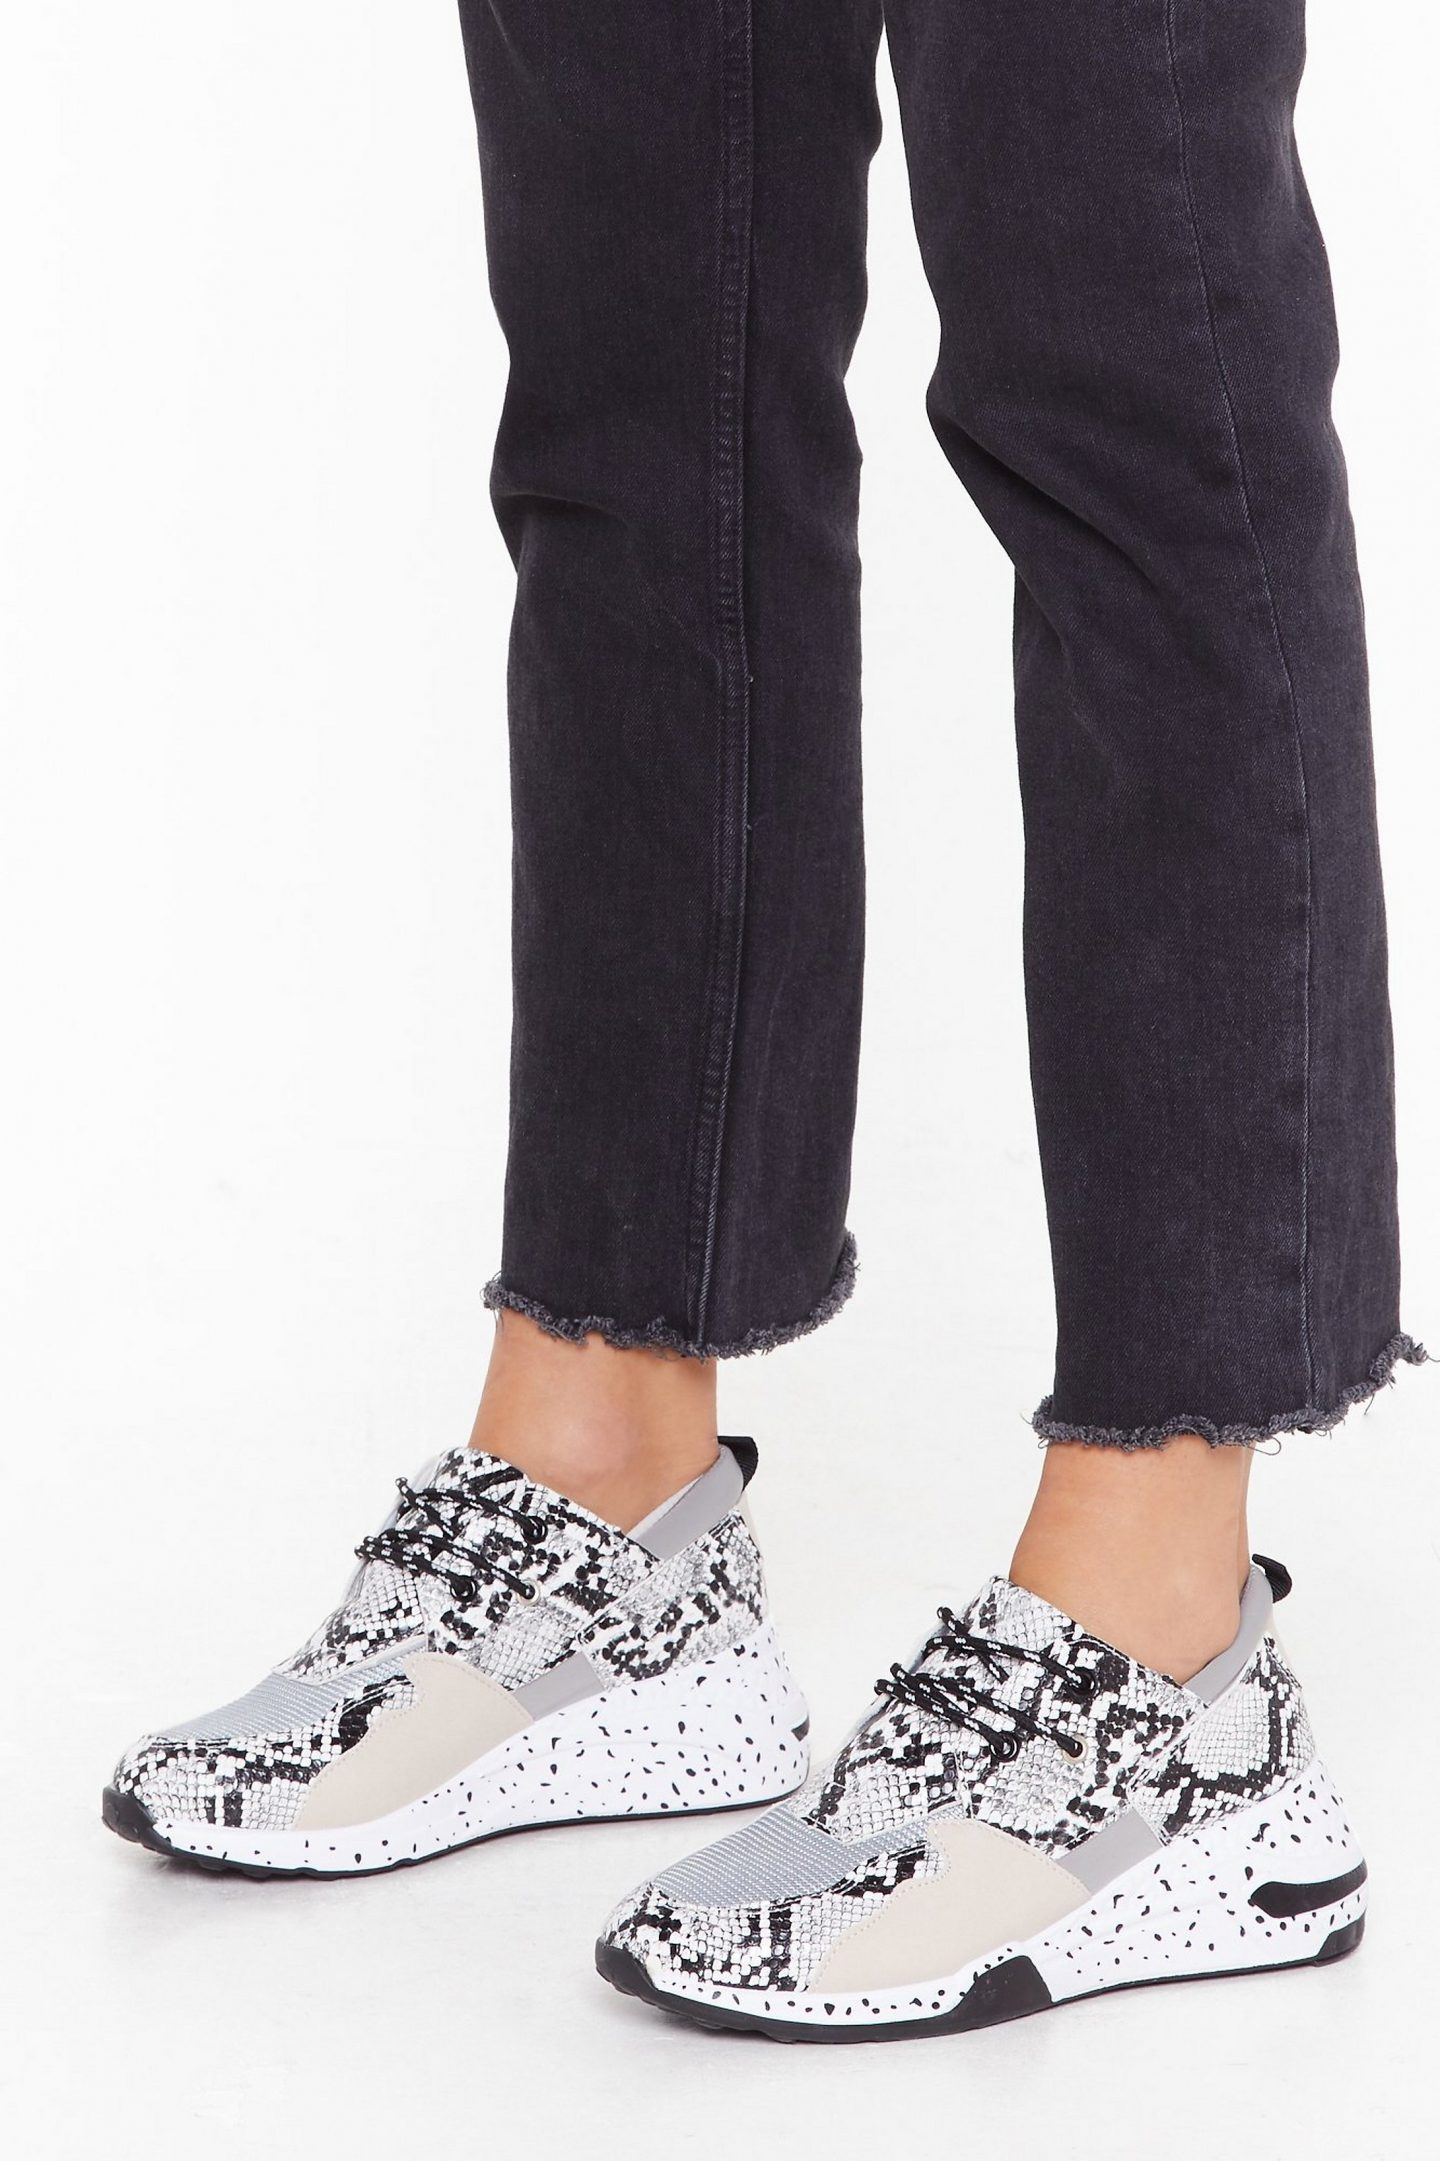 nasty gal sneakers נסטי גל סניקרס